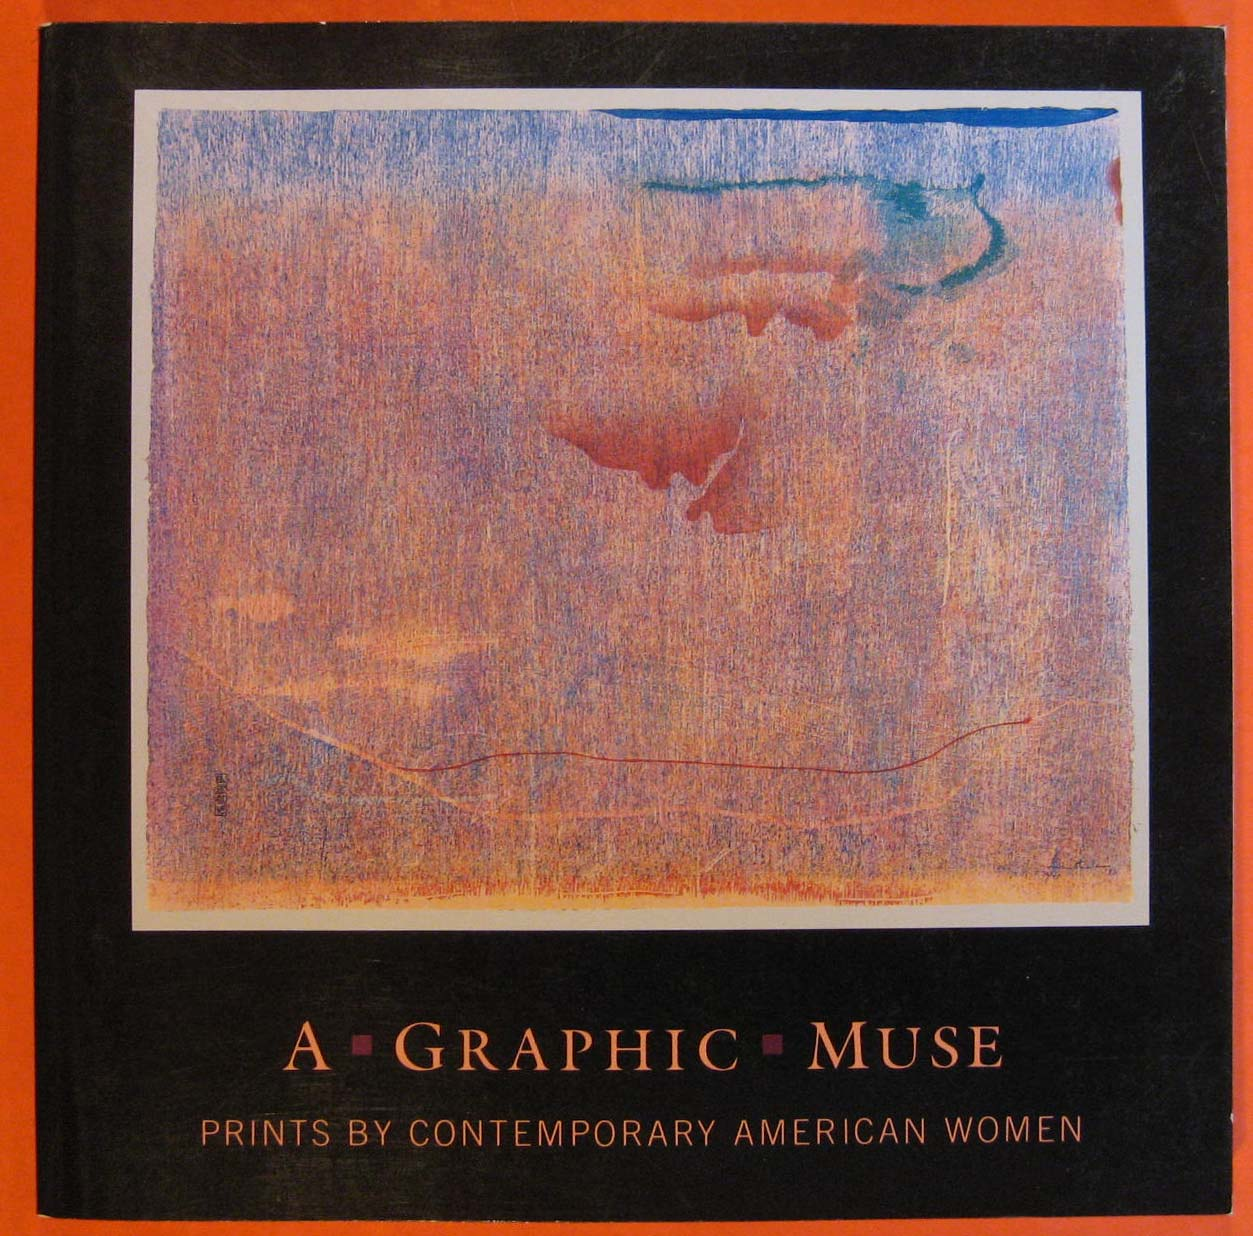 Image for Graphic Muse: Prints by Contemporary American Women, A